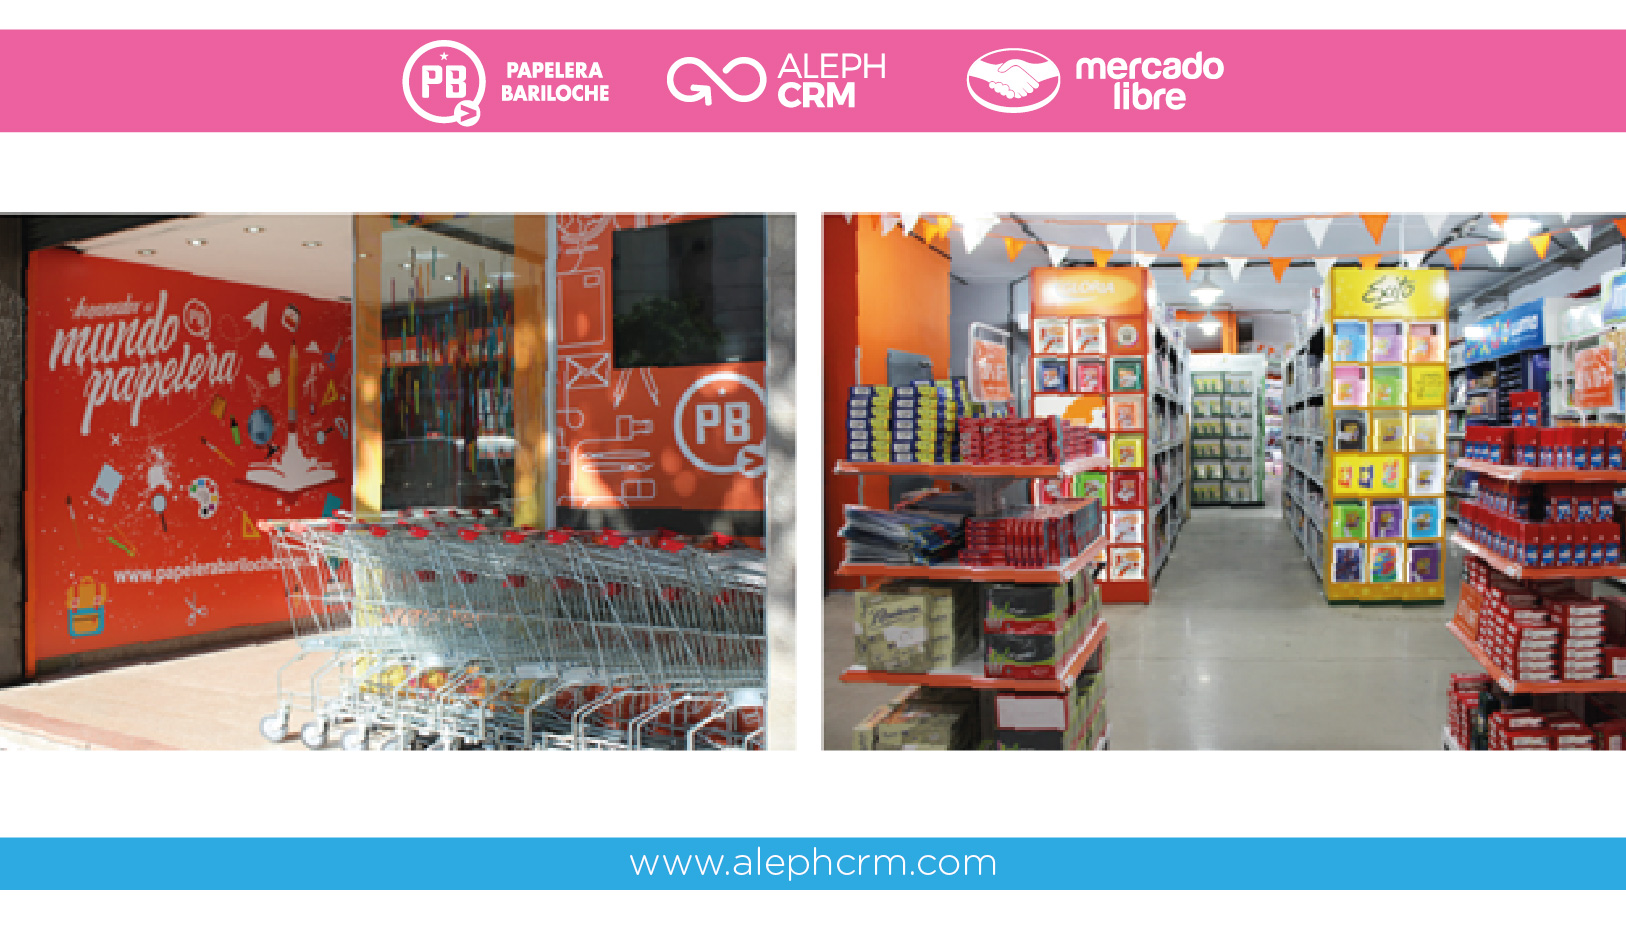 Papelera Bariloche incorporates an innovative tool to promote e-commerce in stationary stores